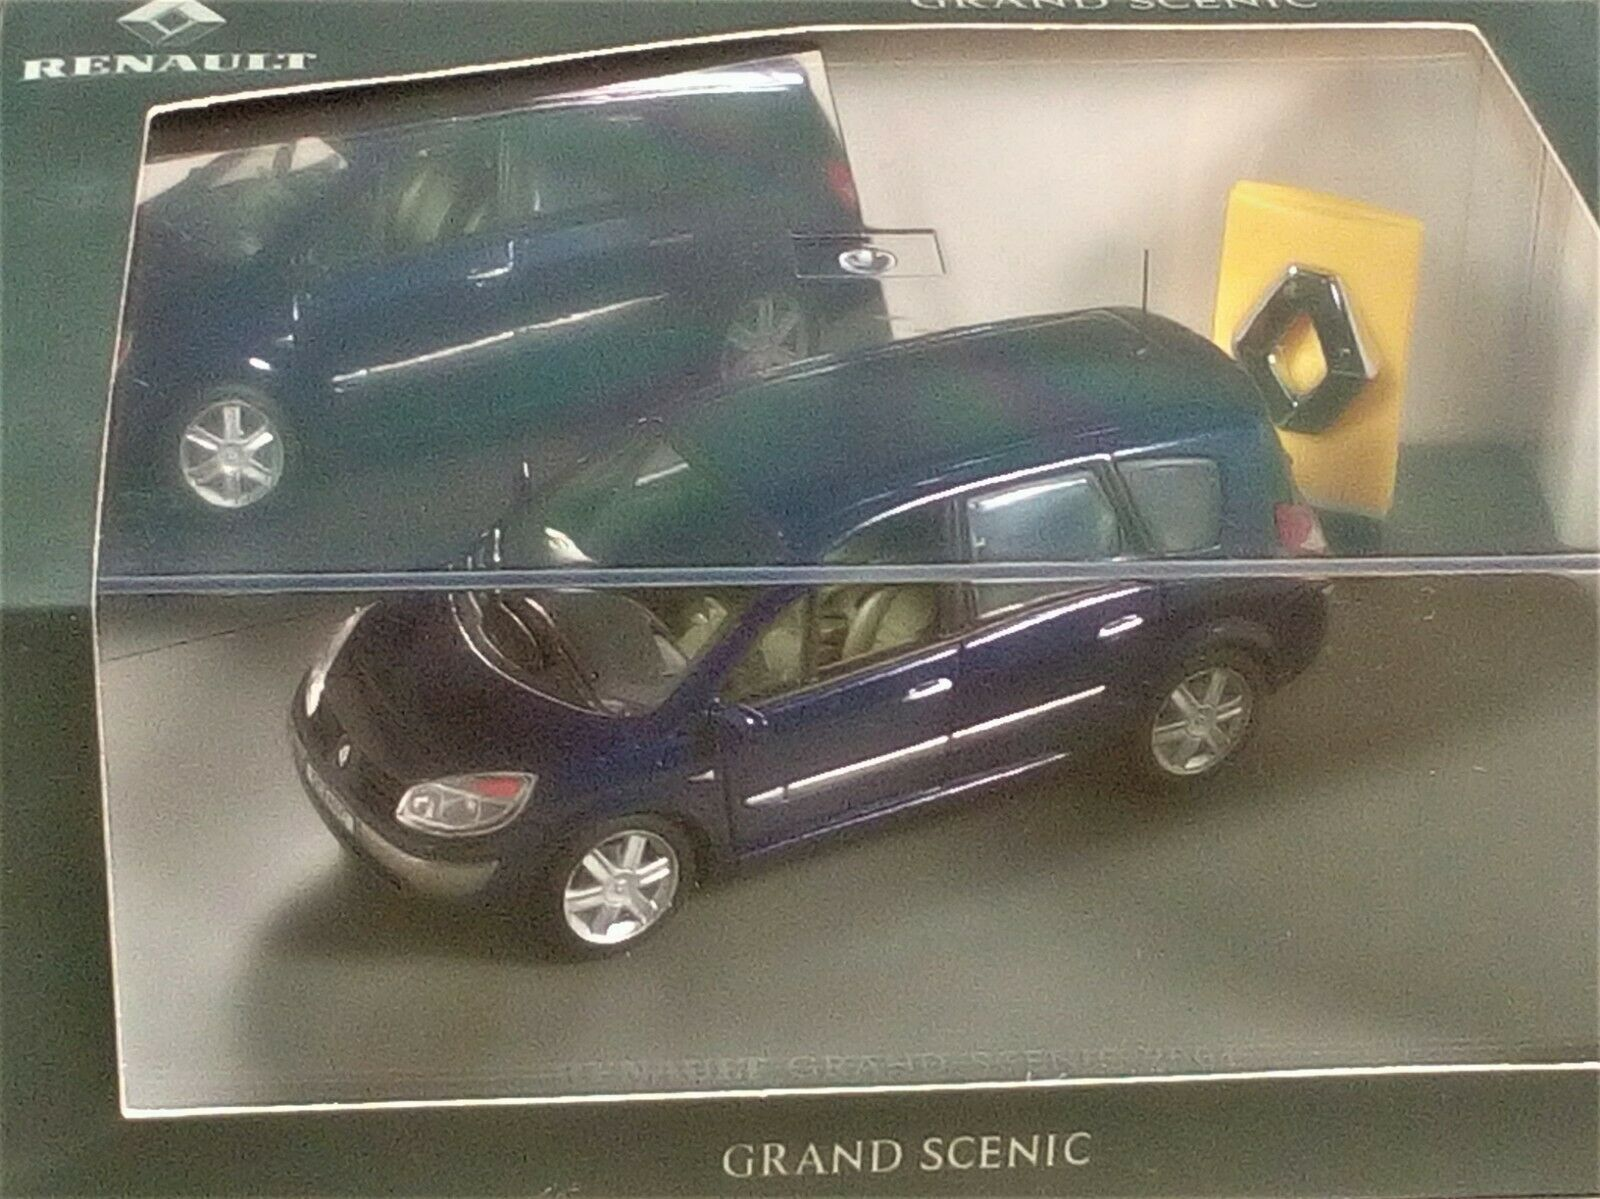 UNIVERSAL HOBBIES 1 43 RENAULT GRAND SCENIC - UH 1 43 MINT & BOX